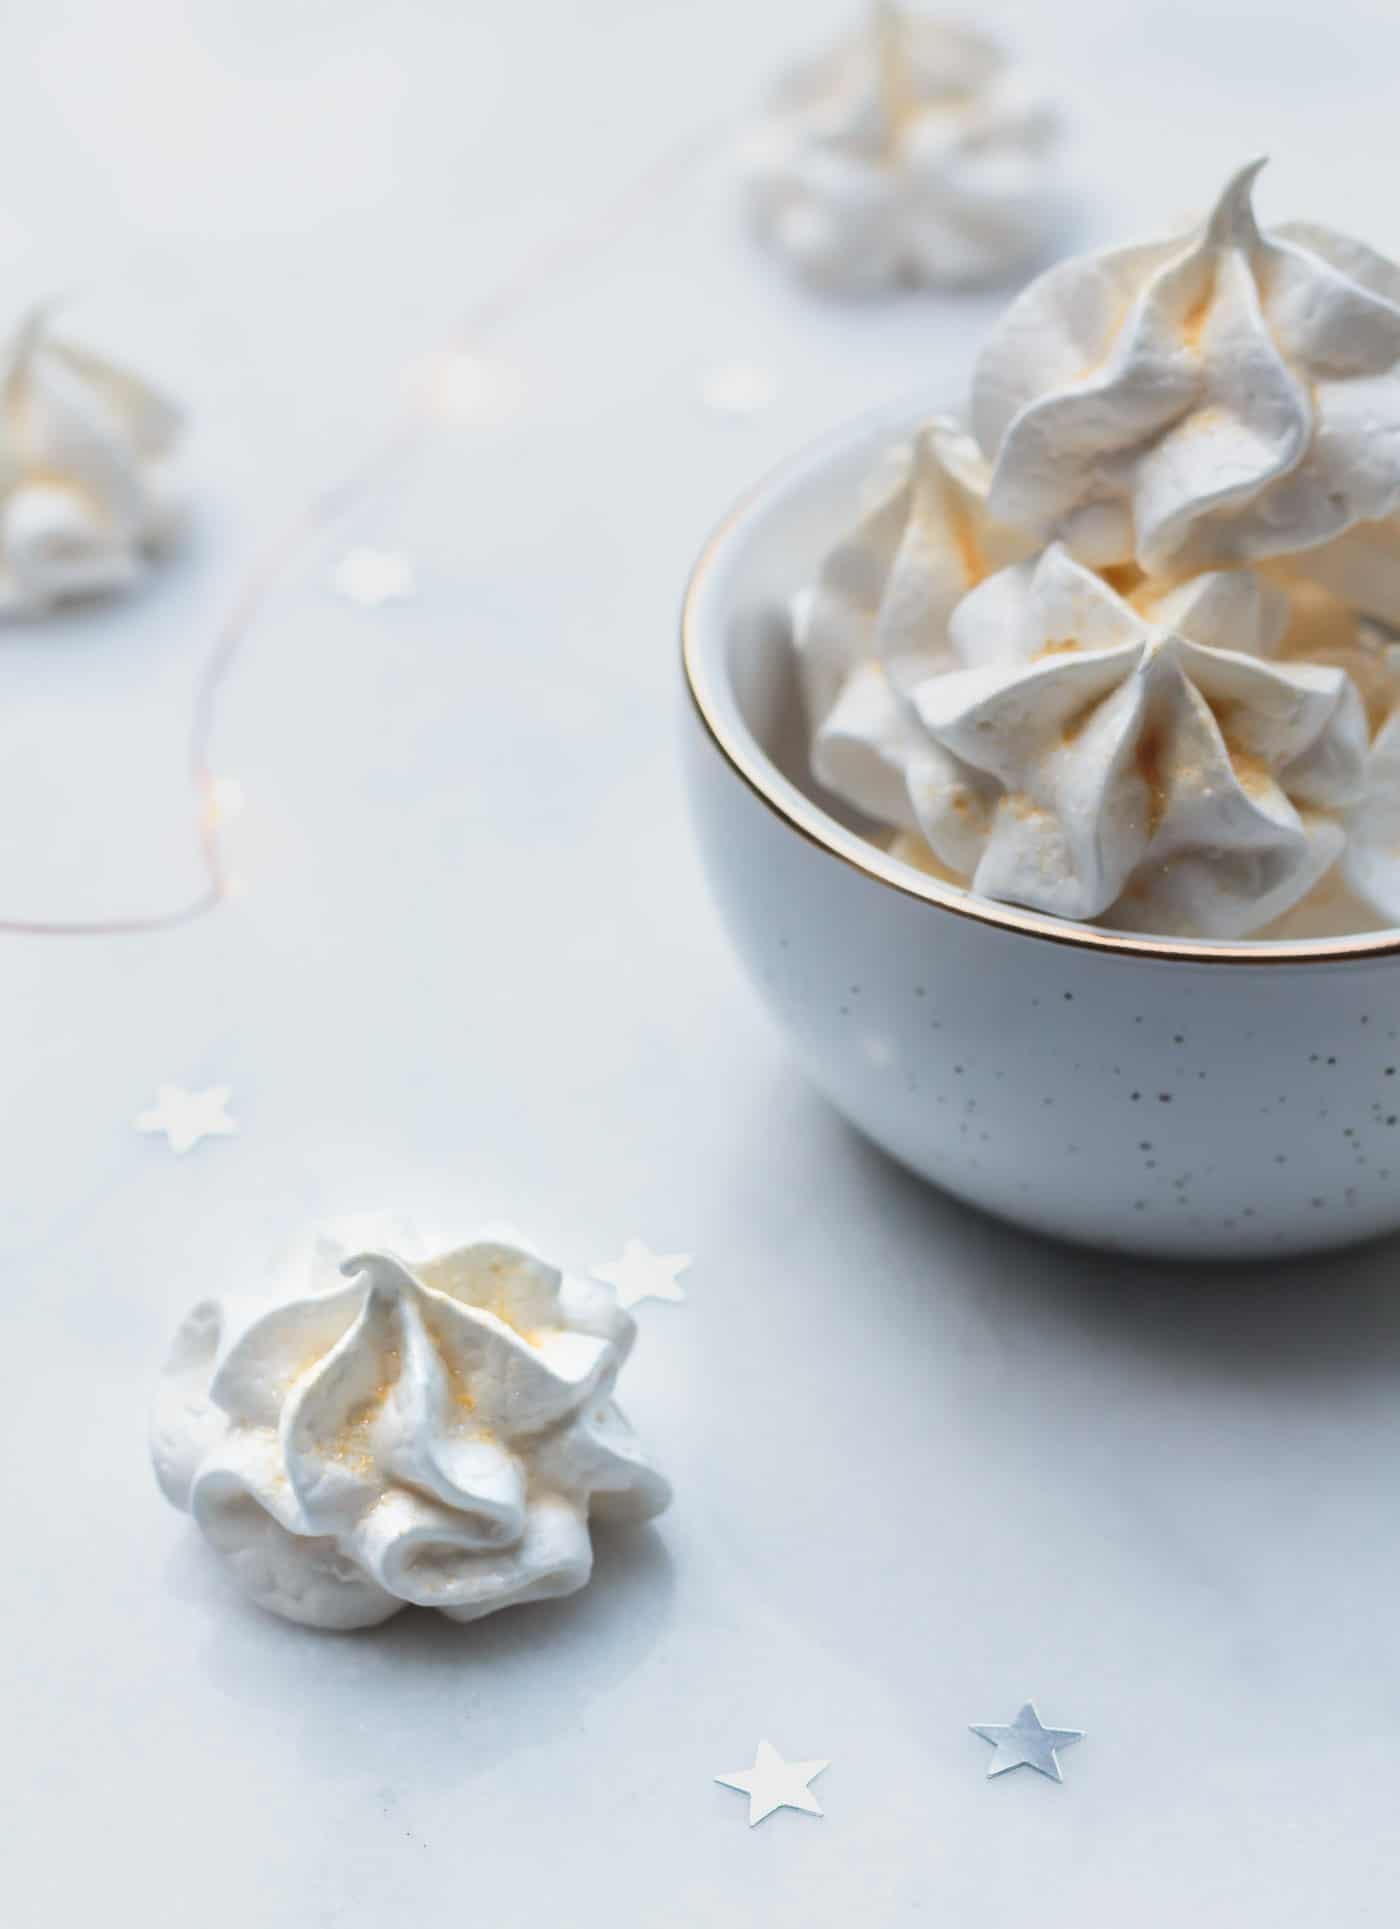 Champagne meringue with gold sugar and bowl of meringues